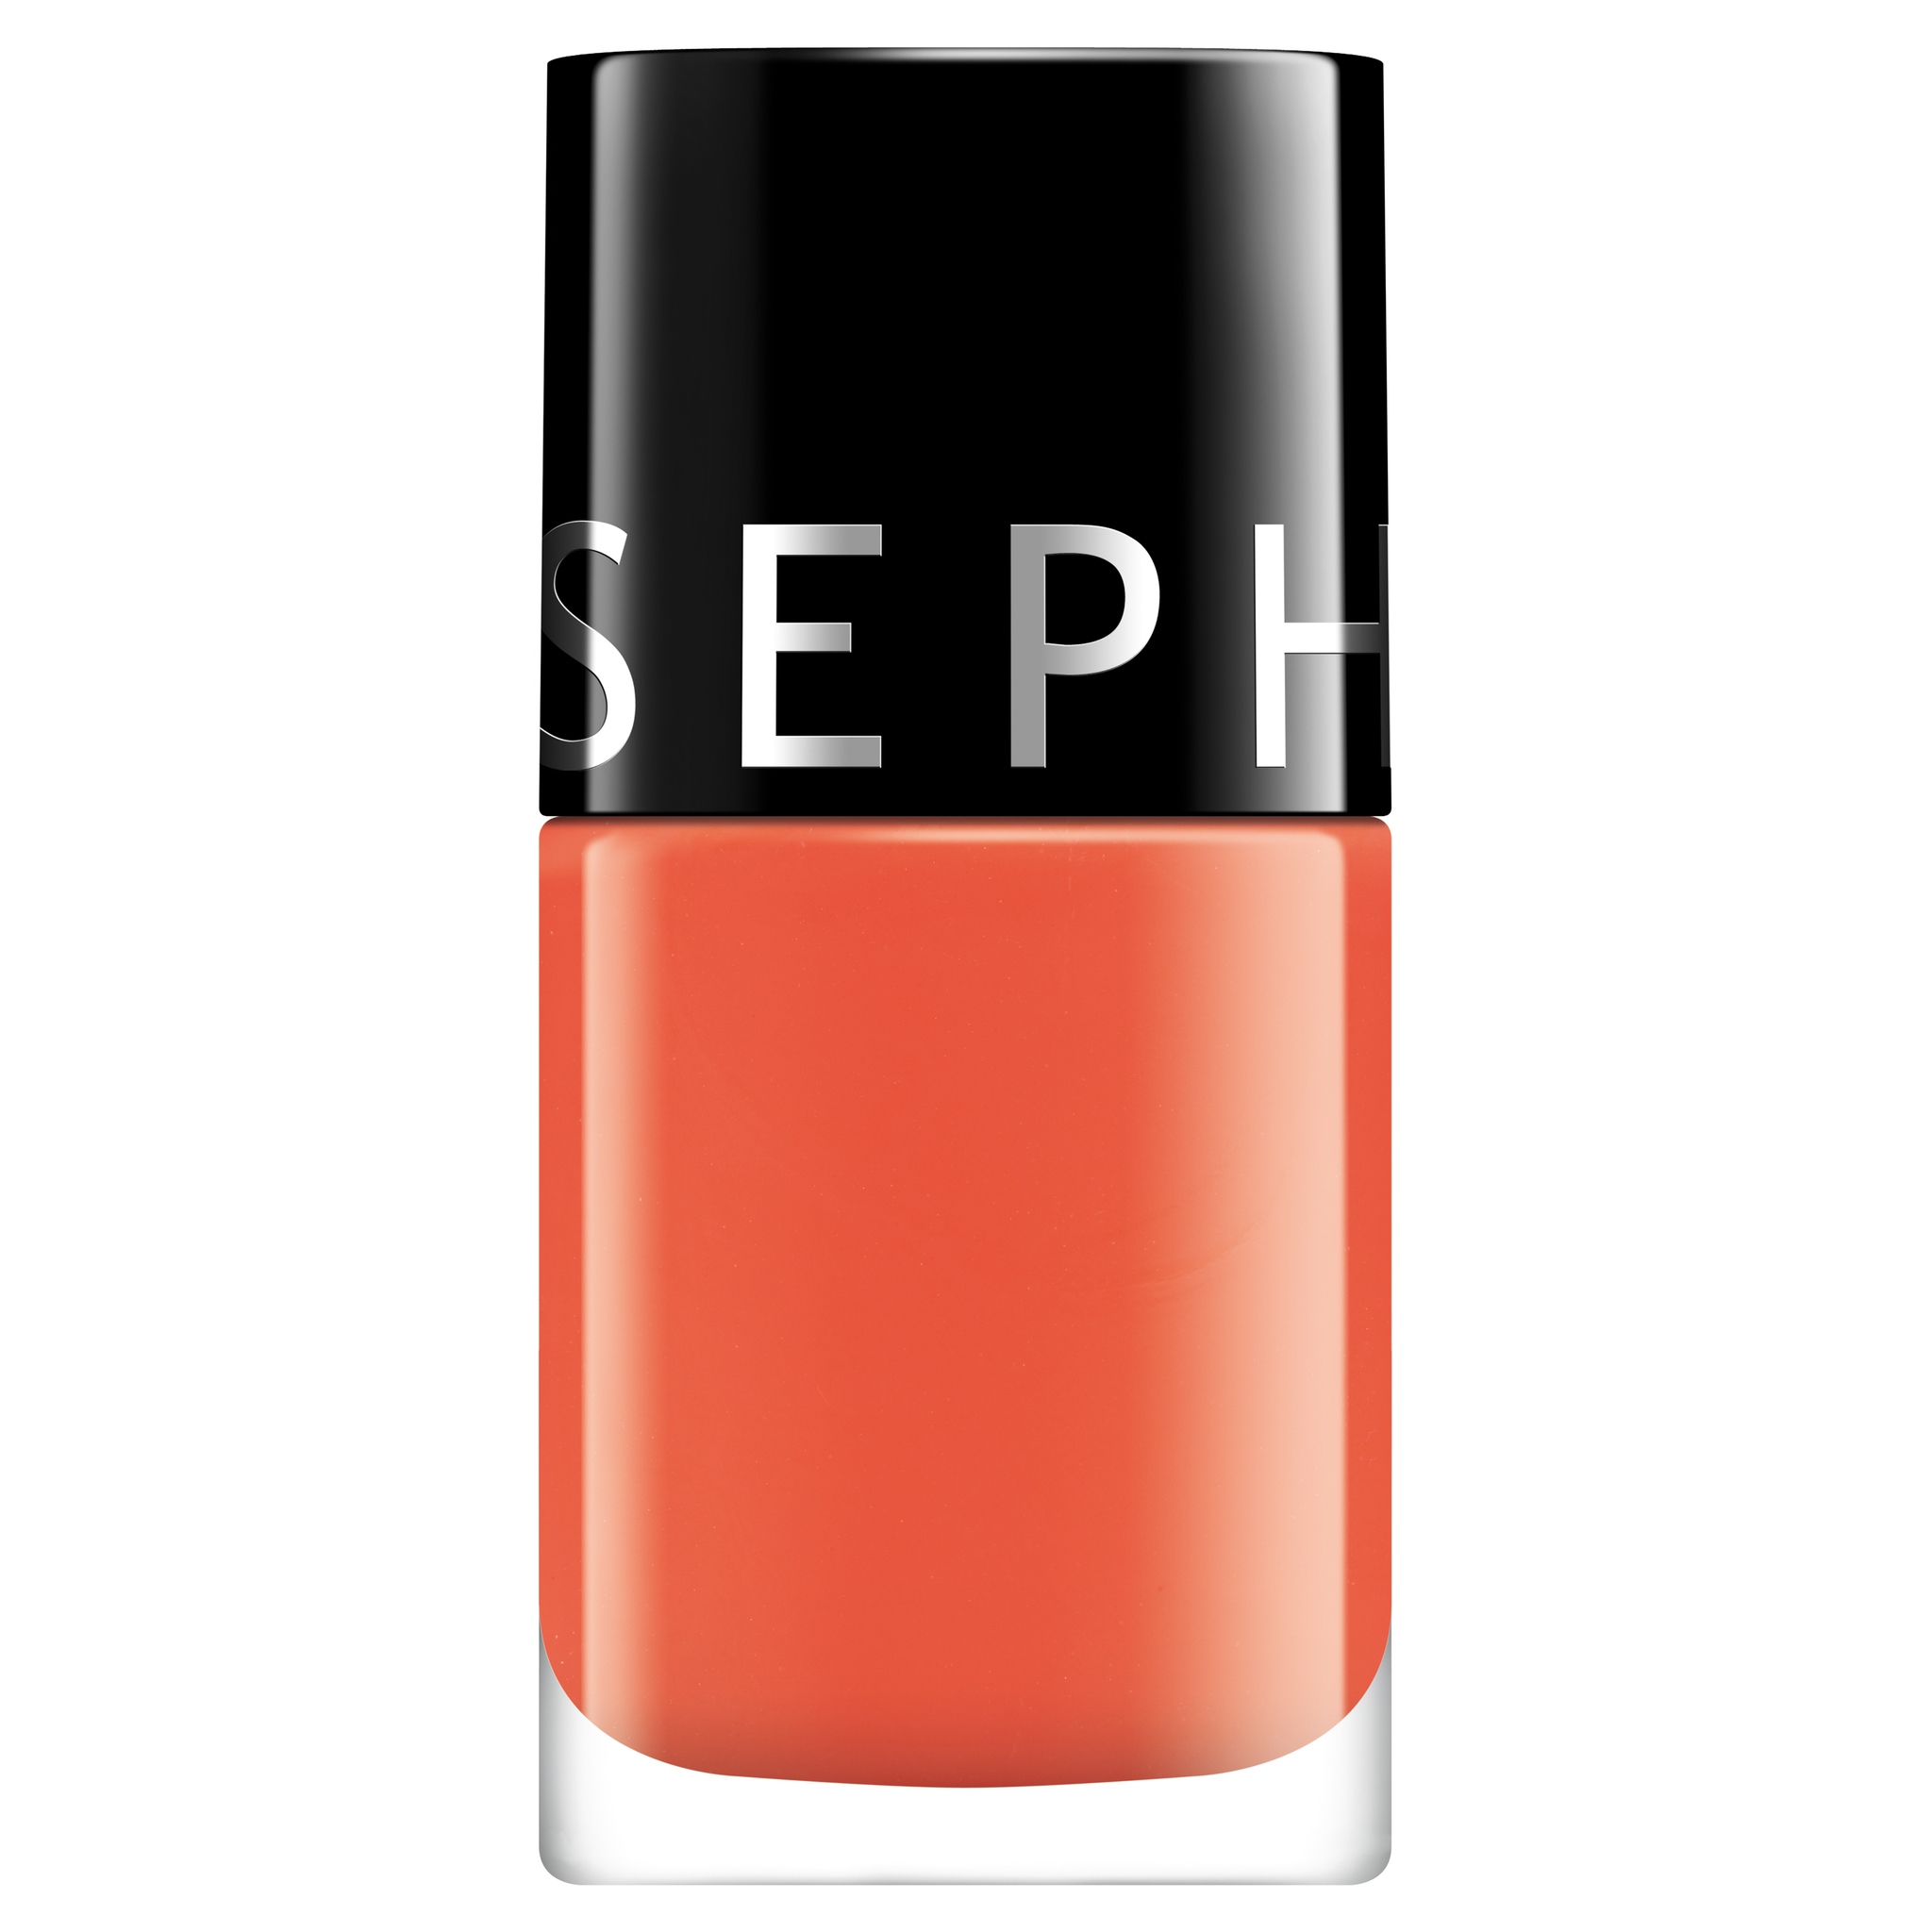 Hot & Spicy de Sephora, por 4,95.